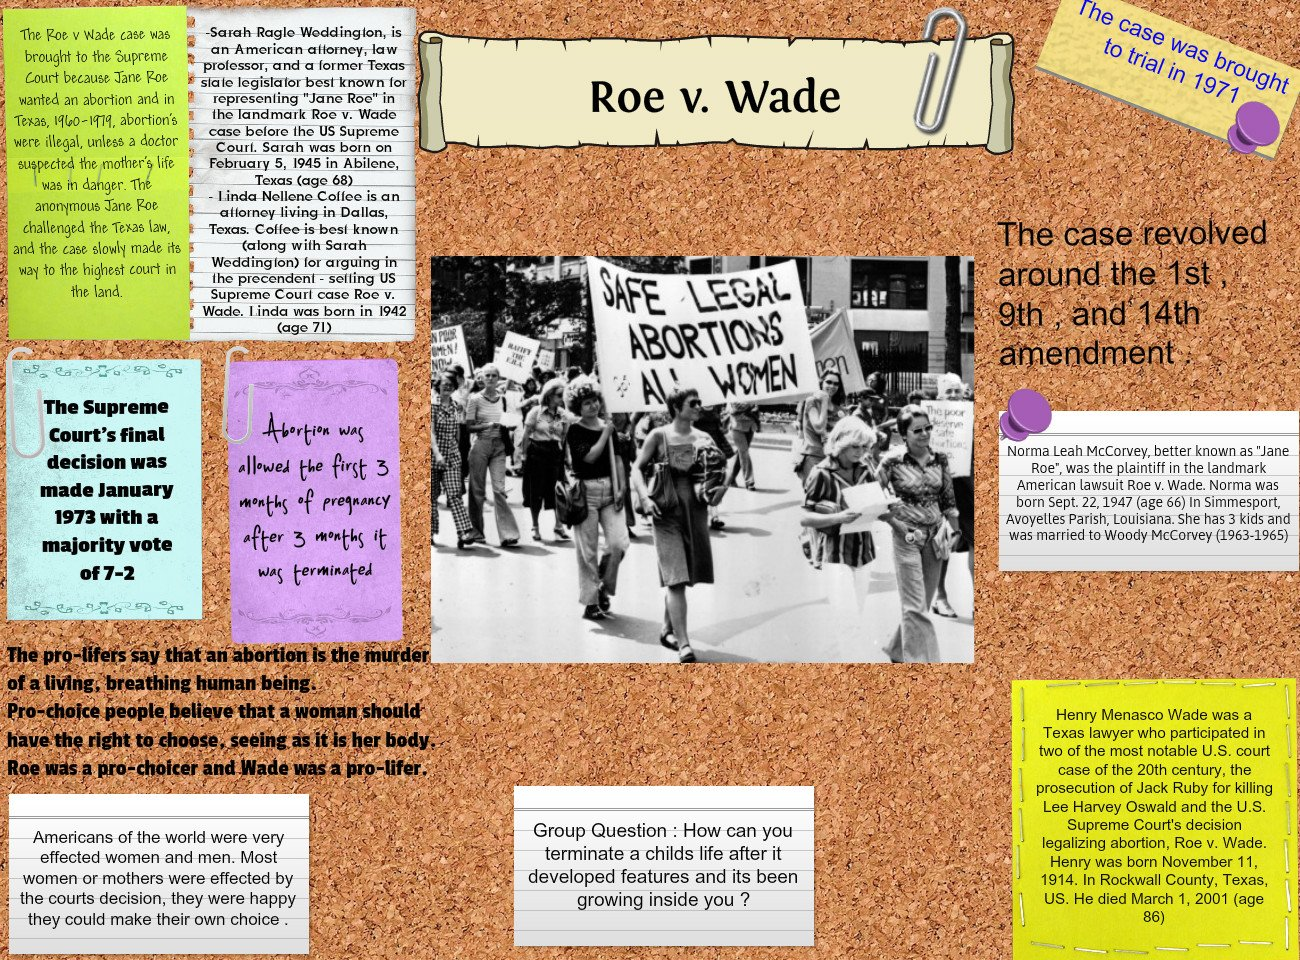 an analysis of roe vs wade case In roe v wade, 410 us 113 (1973), the supreme court held that a pregnant woman has a fundamental privacy right to obtain an abortion 410 us at 153, 155-56 the court's opinion was written by justice harry blackmun.